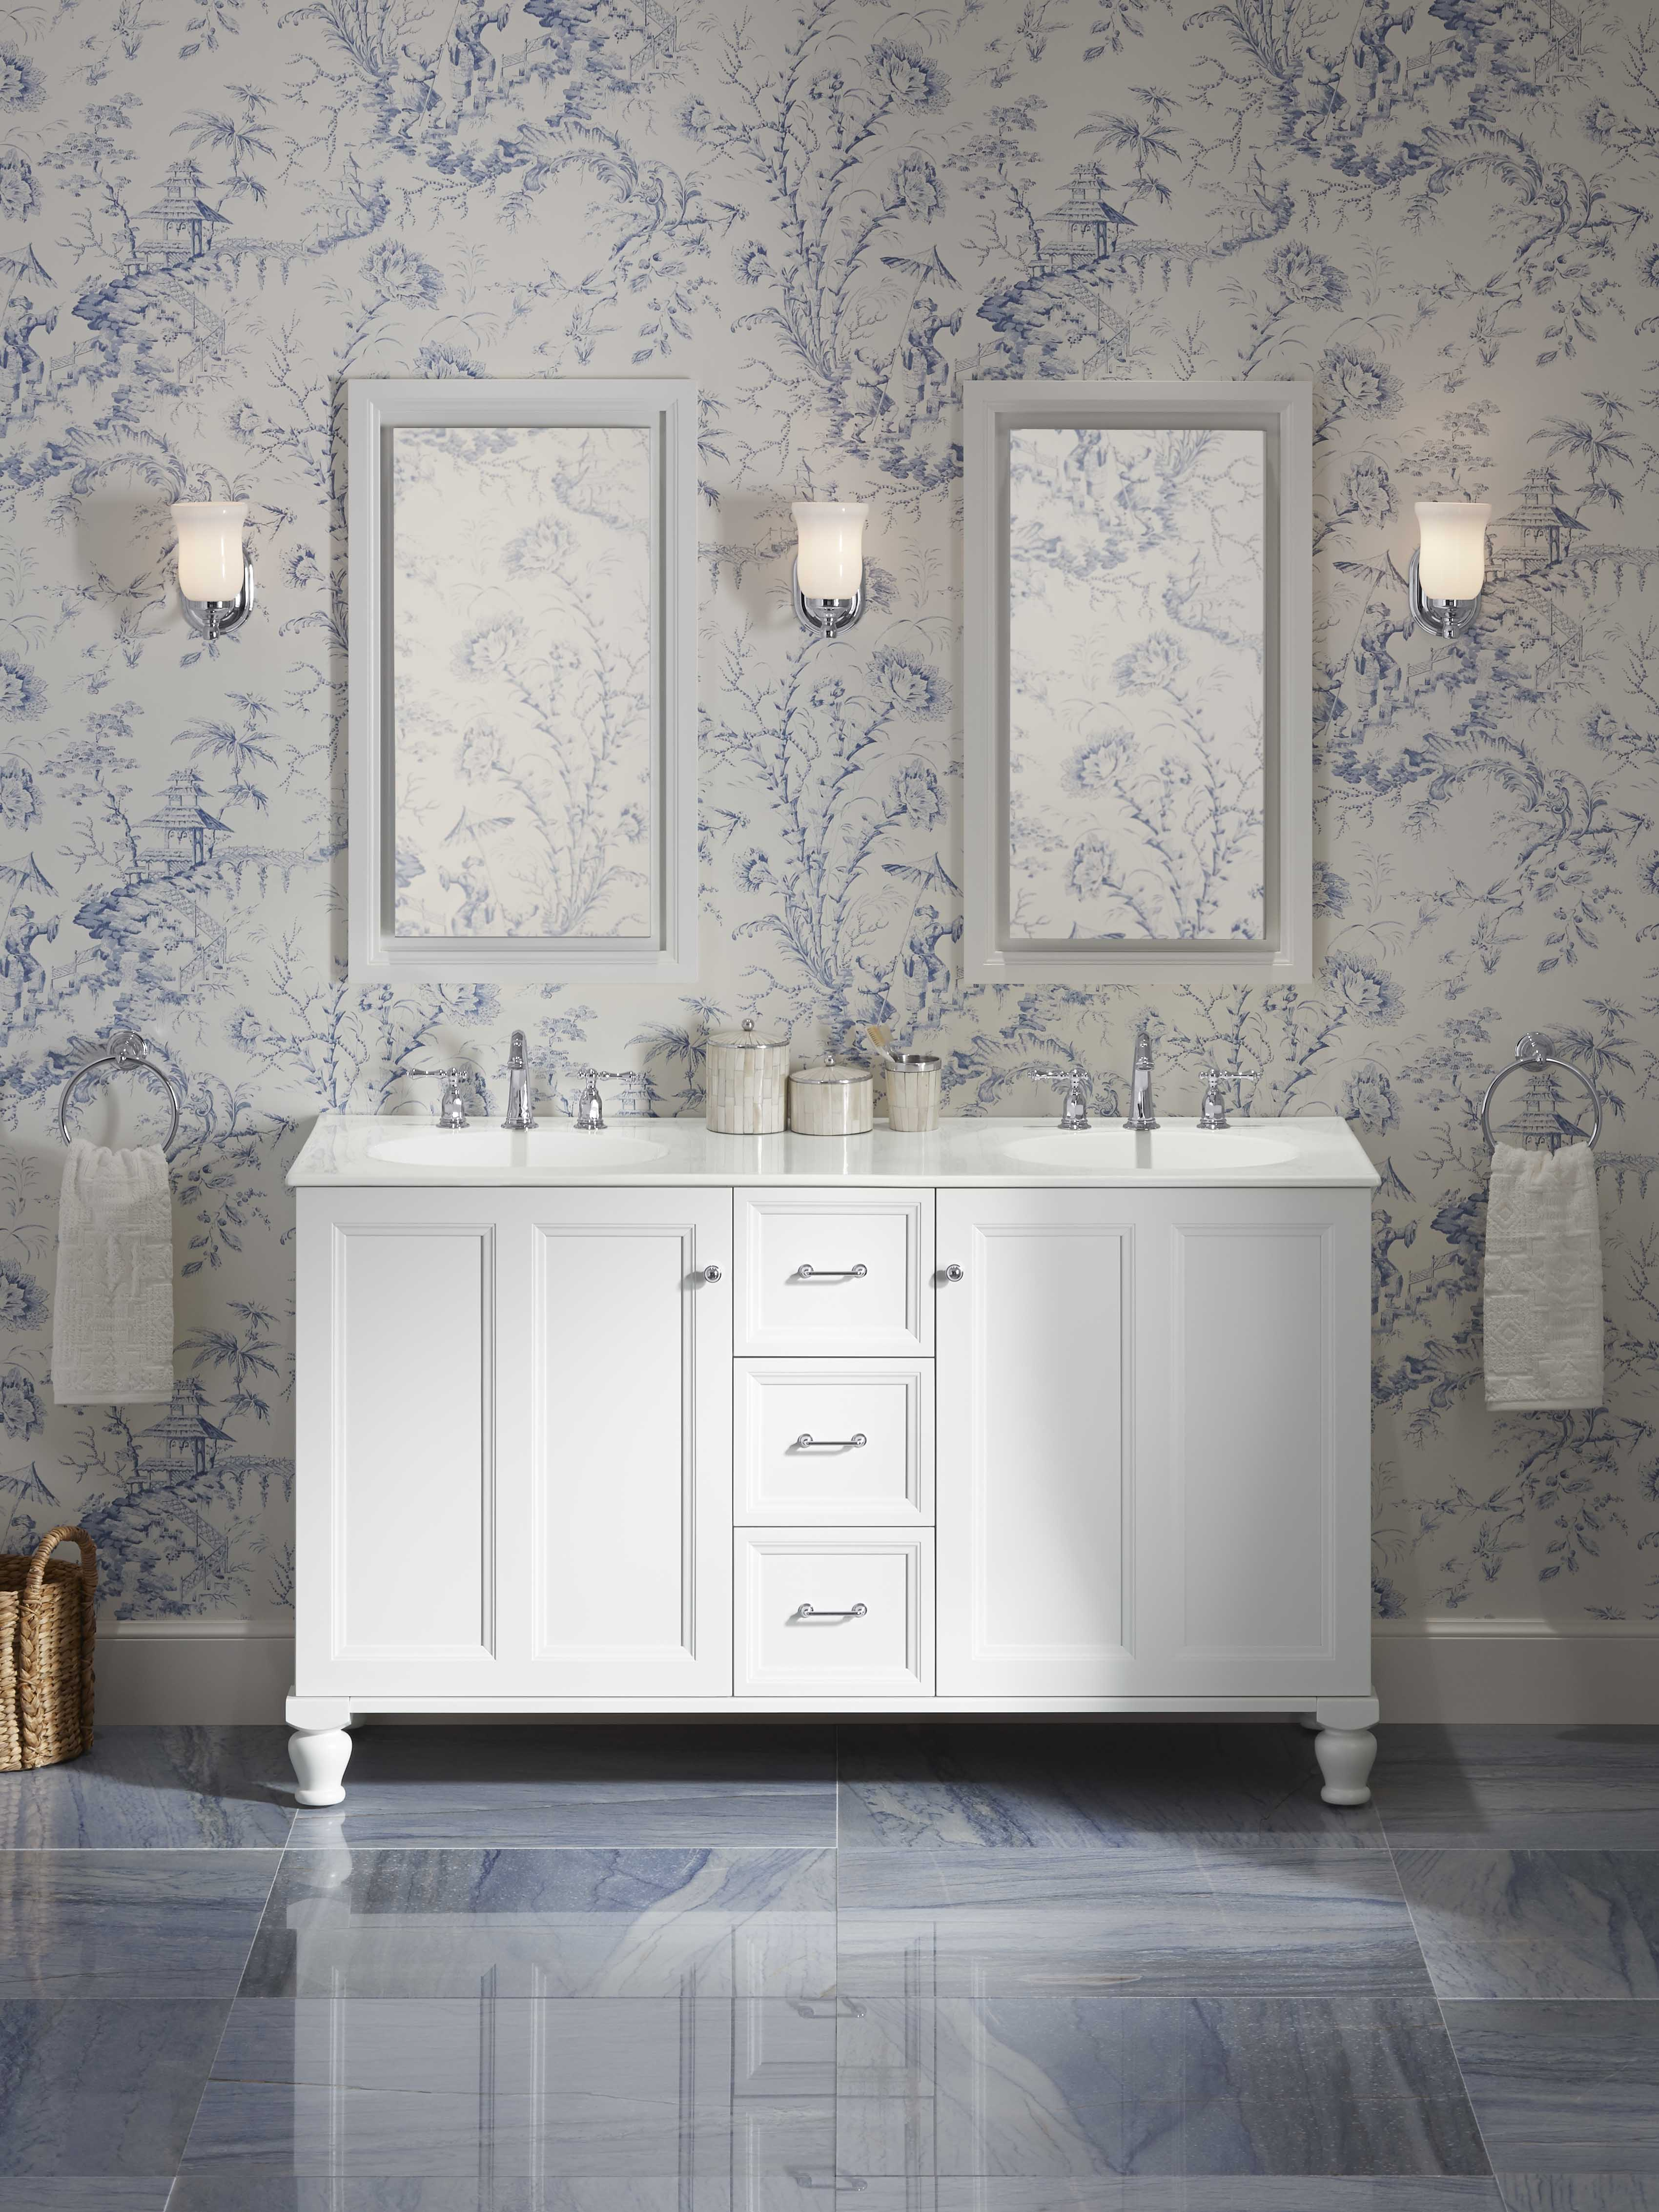 Jacquard® Vanity     Jacquard Mirror     Stillness® Faucet     Coordinating finishes on the towel ring, faucet and vanity hardware provide consistency within a pattern-rich room.